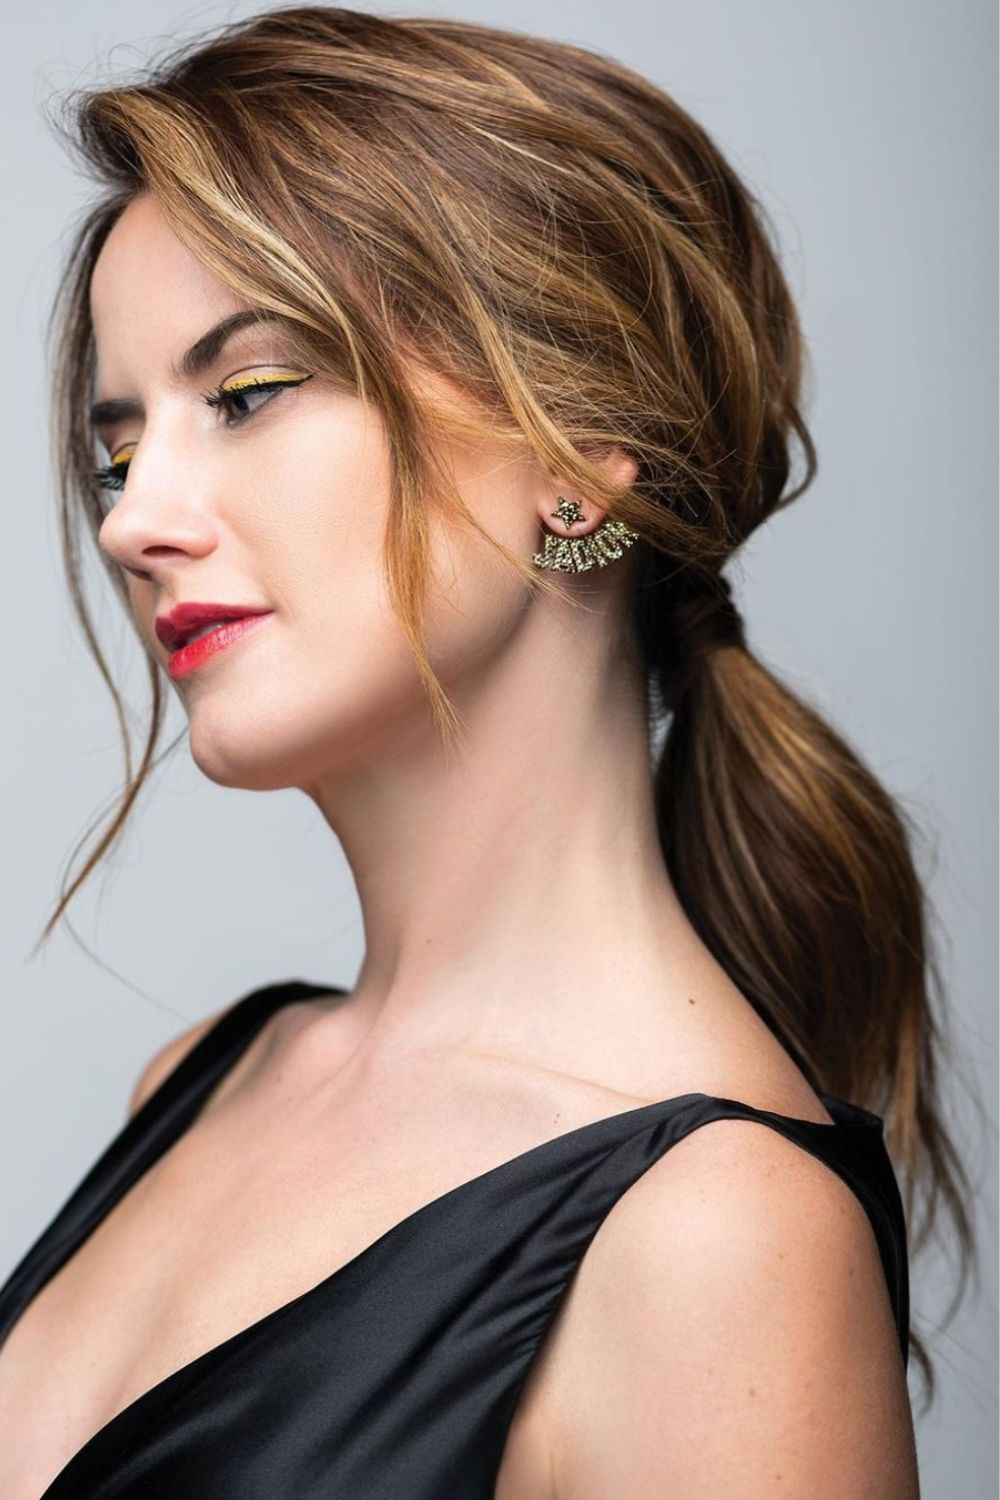 61 Gorangeous Homecoming Hairstyles for Short, Medium and Long Hair